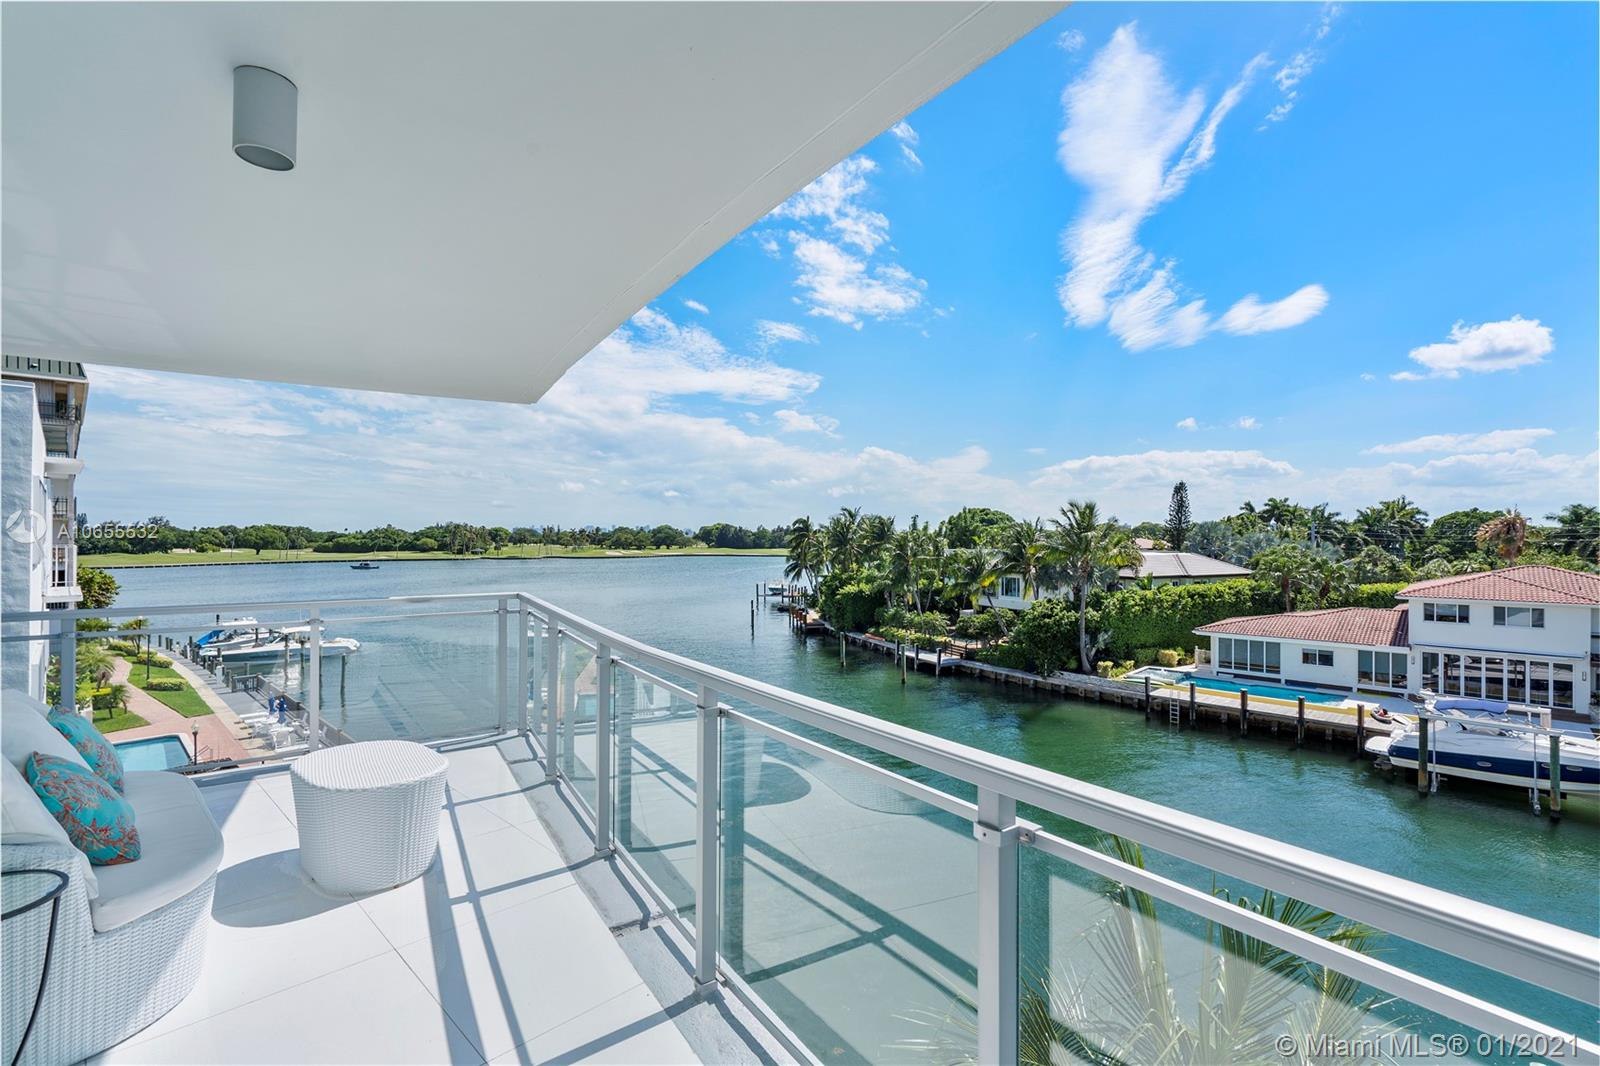 "Very Rare ""01"" Line at Riva Bay Harbor. Professionally Decorated and Furnished. Beautiful views of Indian Creek Golf Course and Bay. 3 Bedrooms plus 3.5 Bathrooms. 2,347 sq ft of living area plus 729 sq ft of terrace as per Floor Plan. Building has underground parking, Sam Robin designed lobby, 24hr security, valet parking, fitness center, and a rooftop pool & spa with spectacular views. Walking distance to Beach & Bal Harbour Shops. Priced to sell! Bring your best offer!"